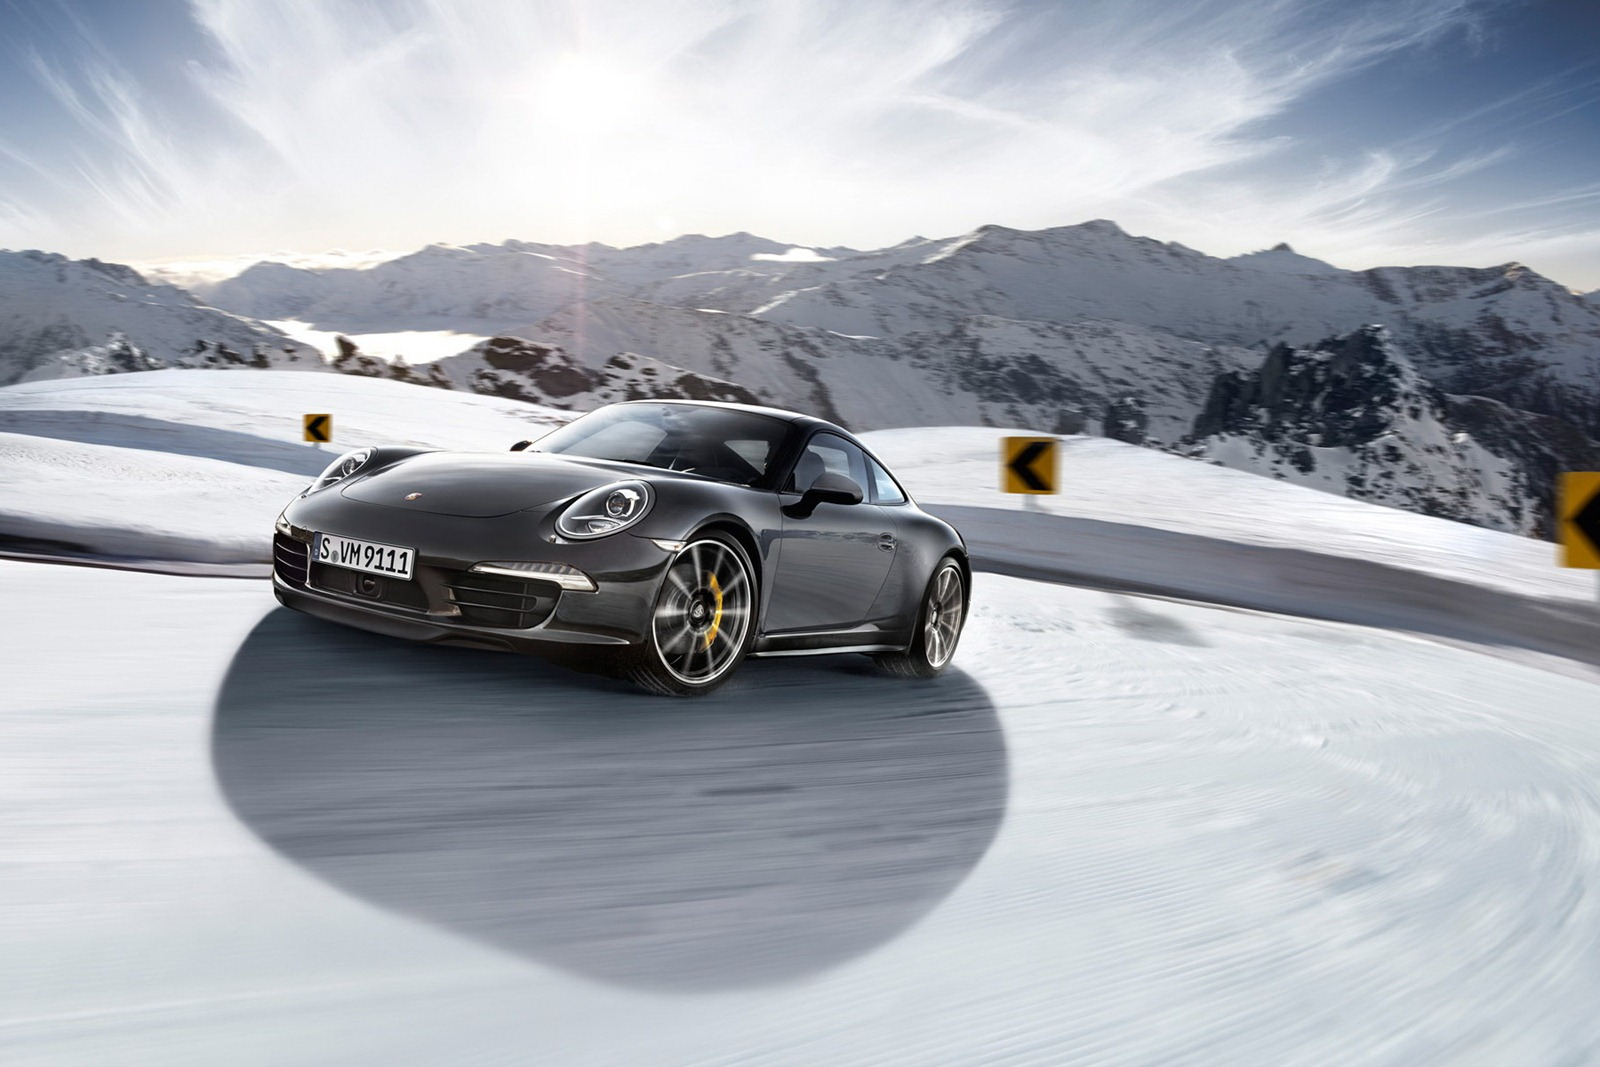 Porsche is celebrating 50 years of the 911